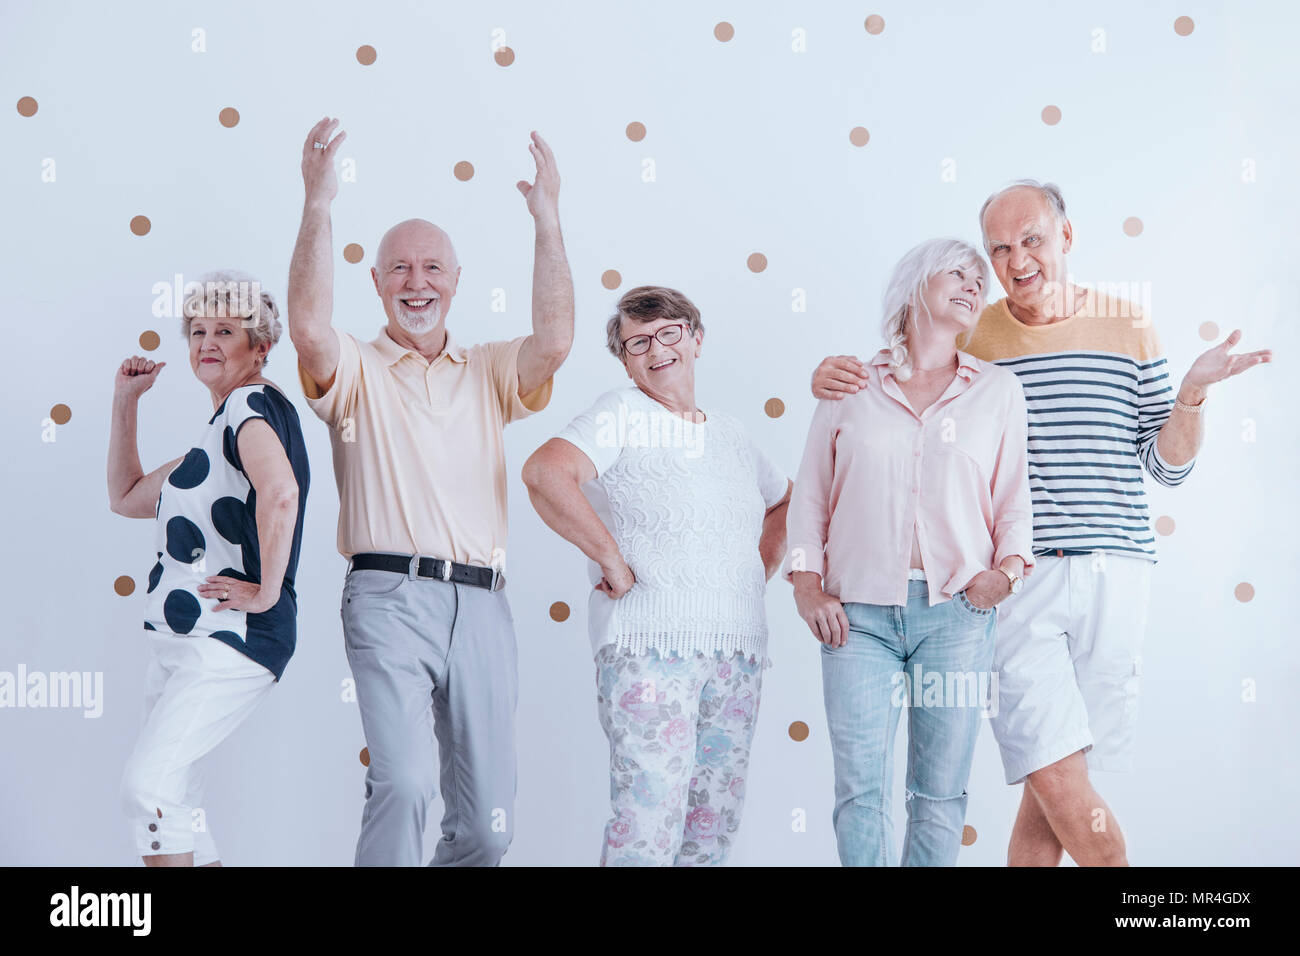 Happy senior people celebrating during birthday party - Stock Image